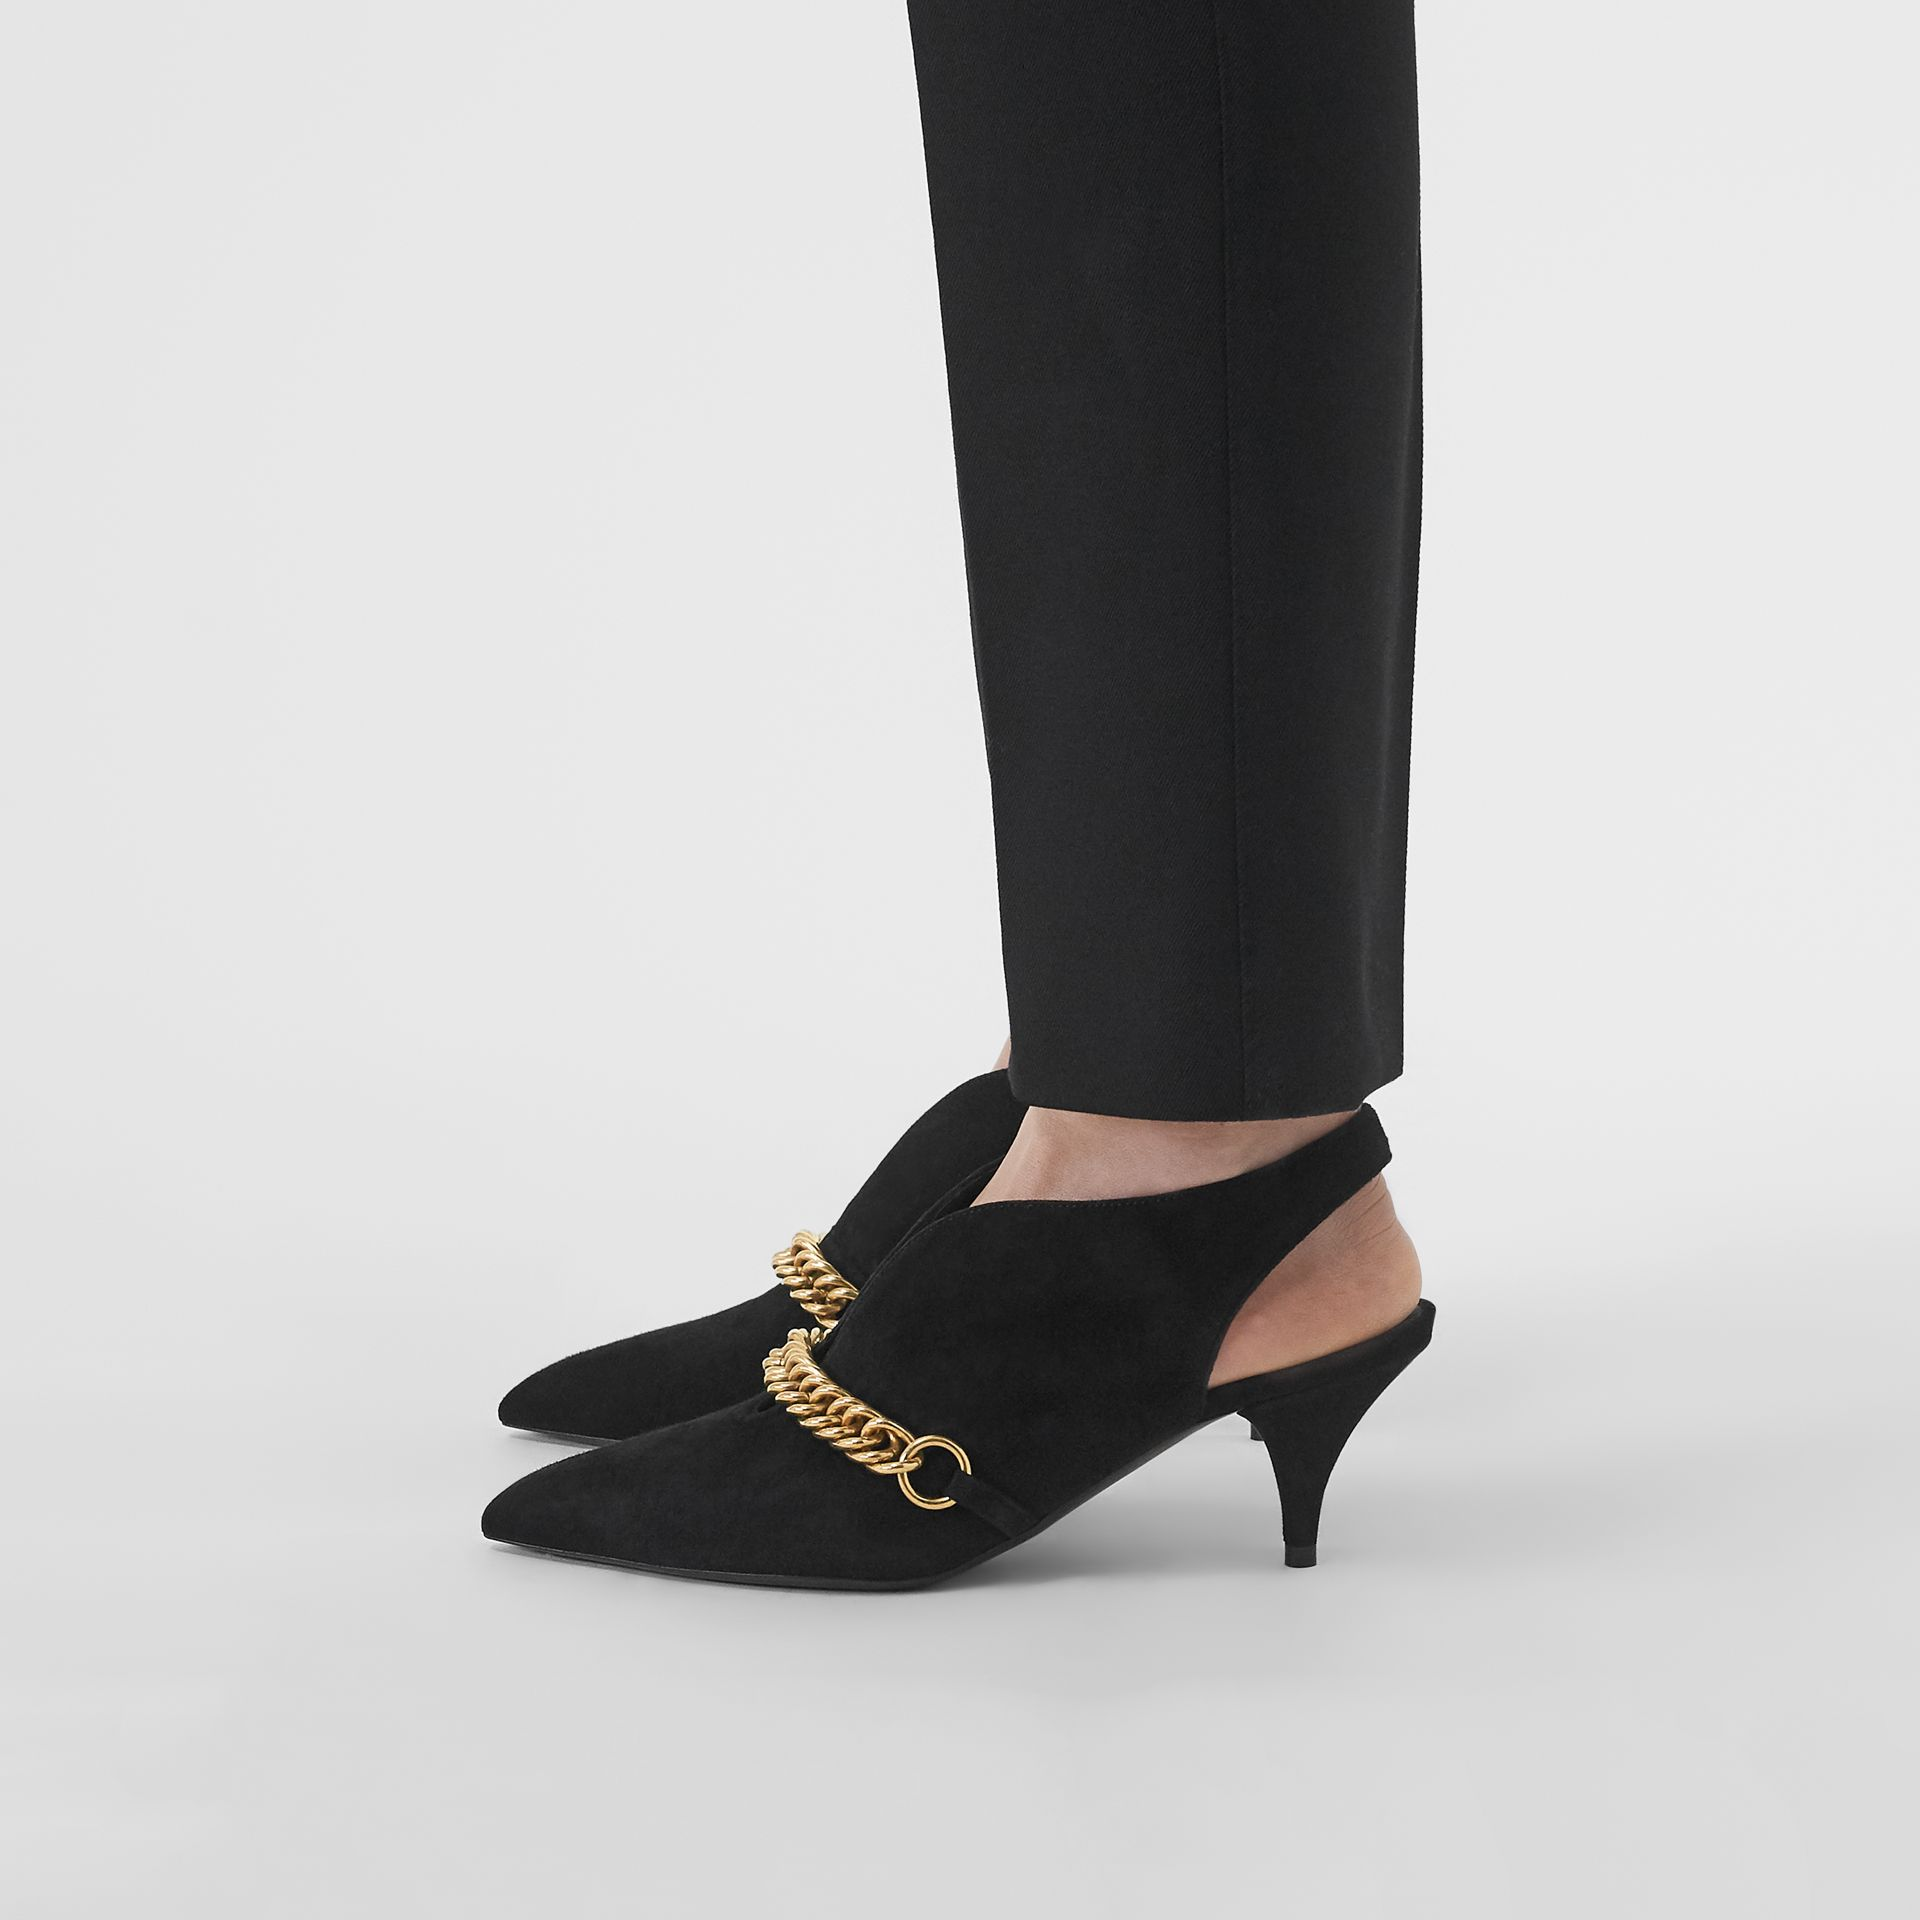 Link Detail Suede Slingback Pumps in Black - Women | Burberry United Kingdom - gallery image 2